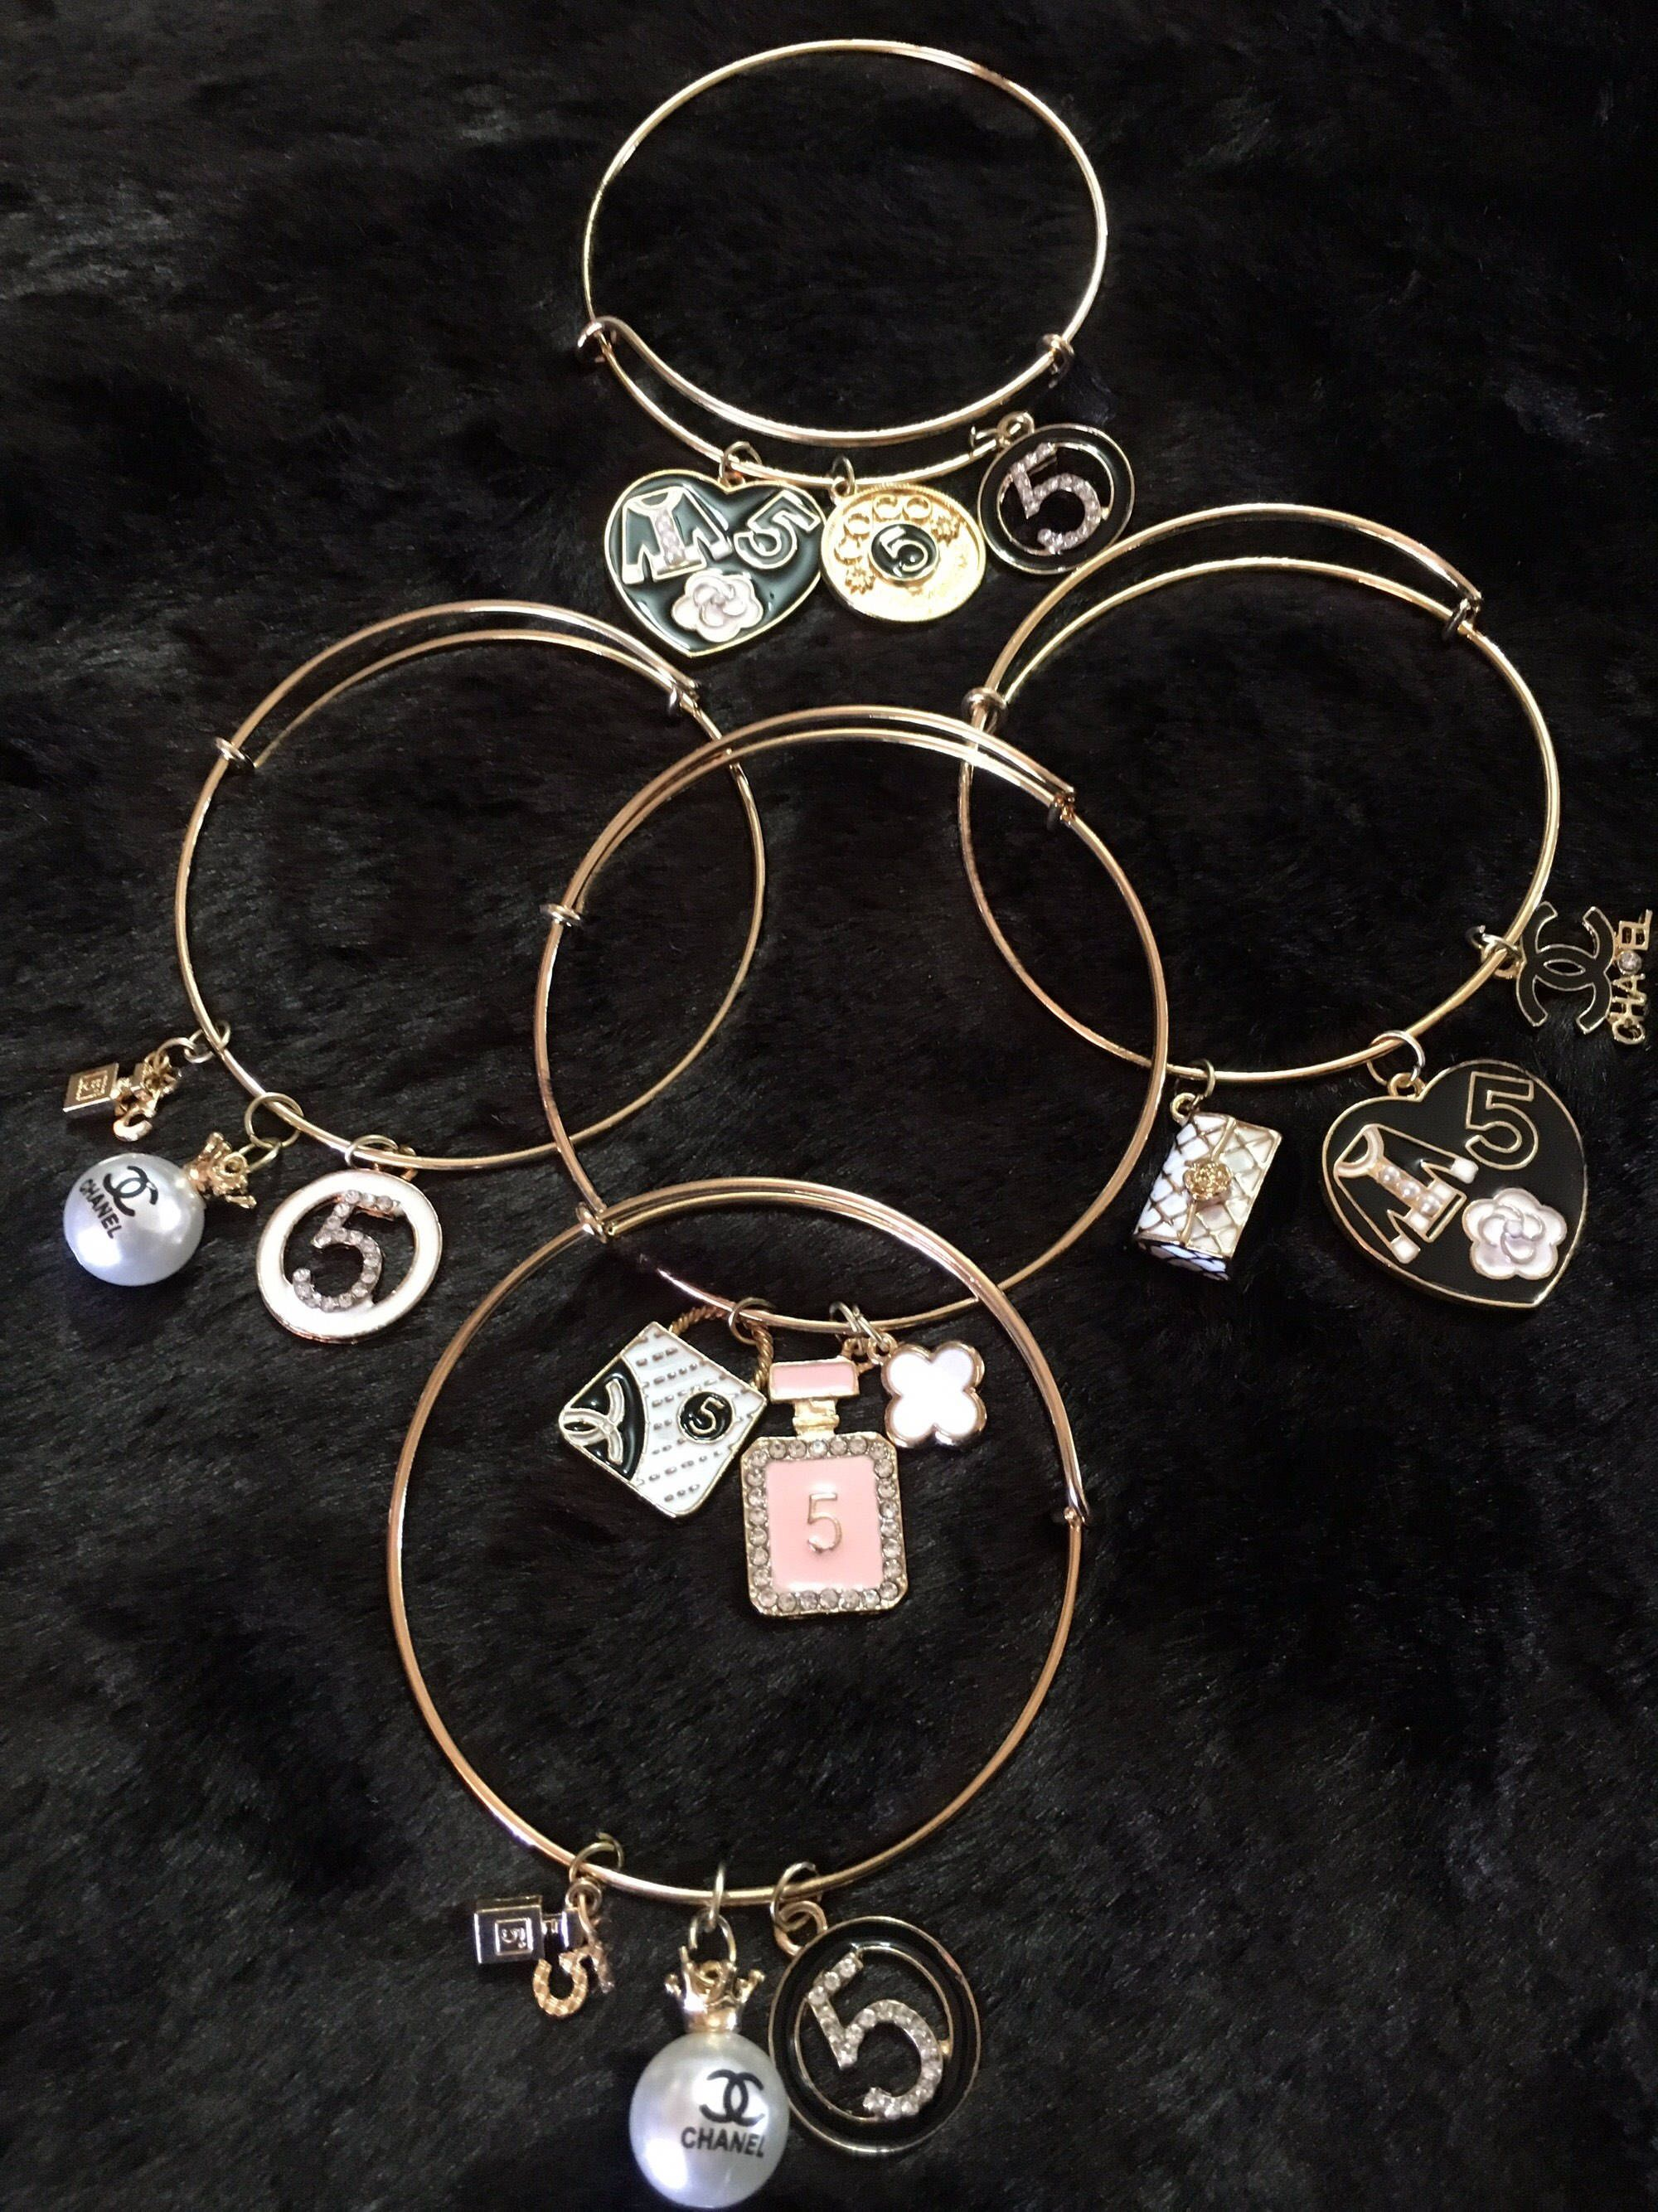 gallery bangle charm set coach lock normal jewelry product and lyst gold bangles metallic rosegold key in bracelets